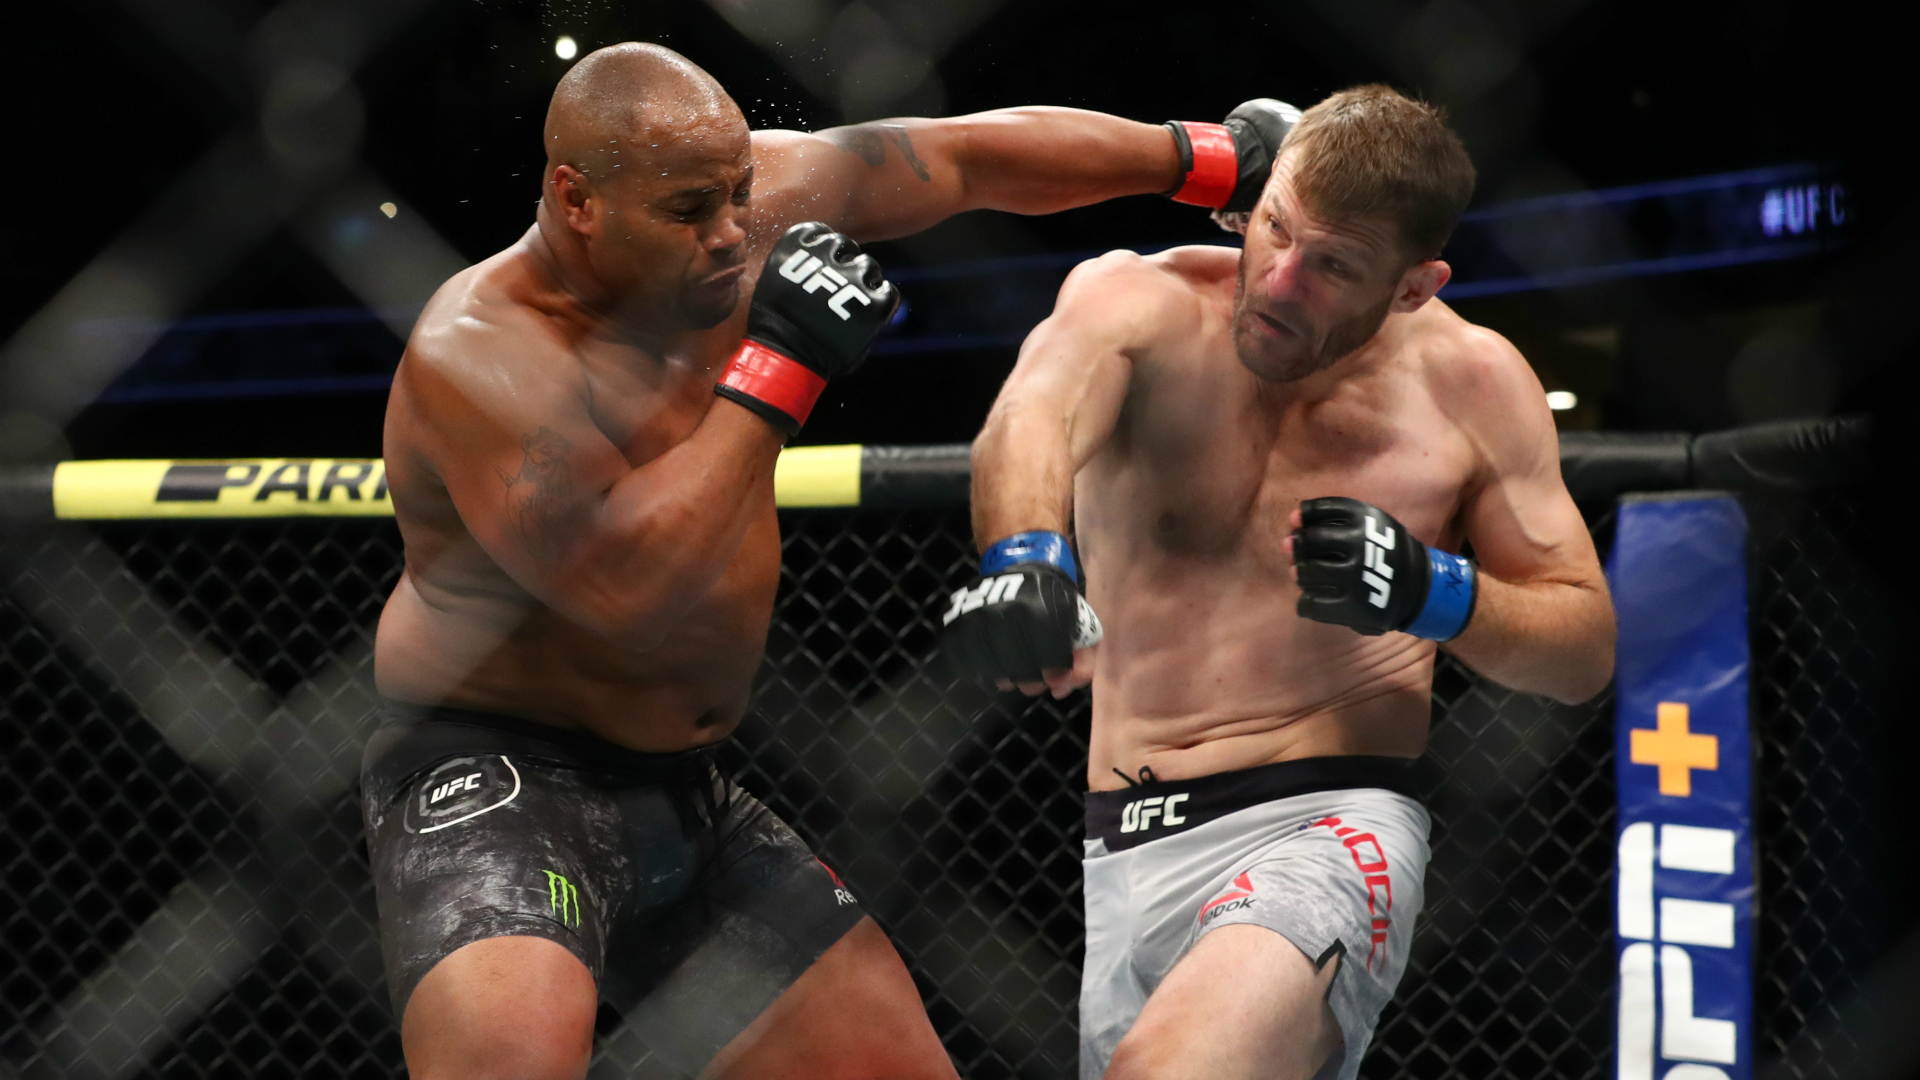 Stipe Miocic v Daniel Cormier: The story so far ahead of Vegas trilogy at UFC 252